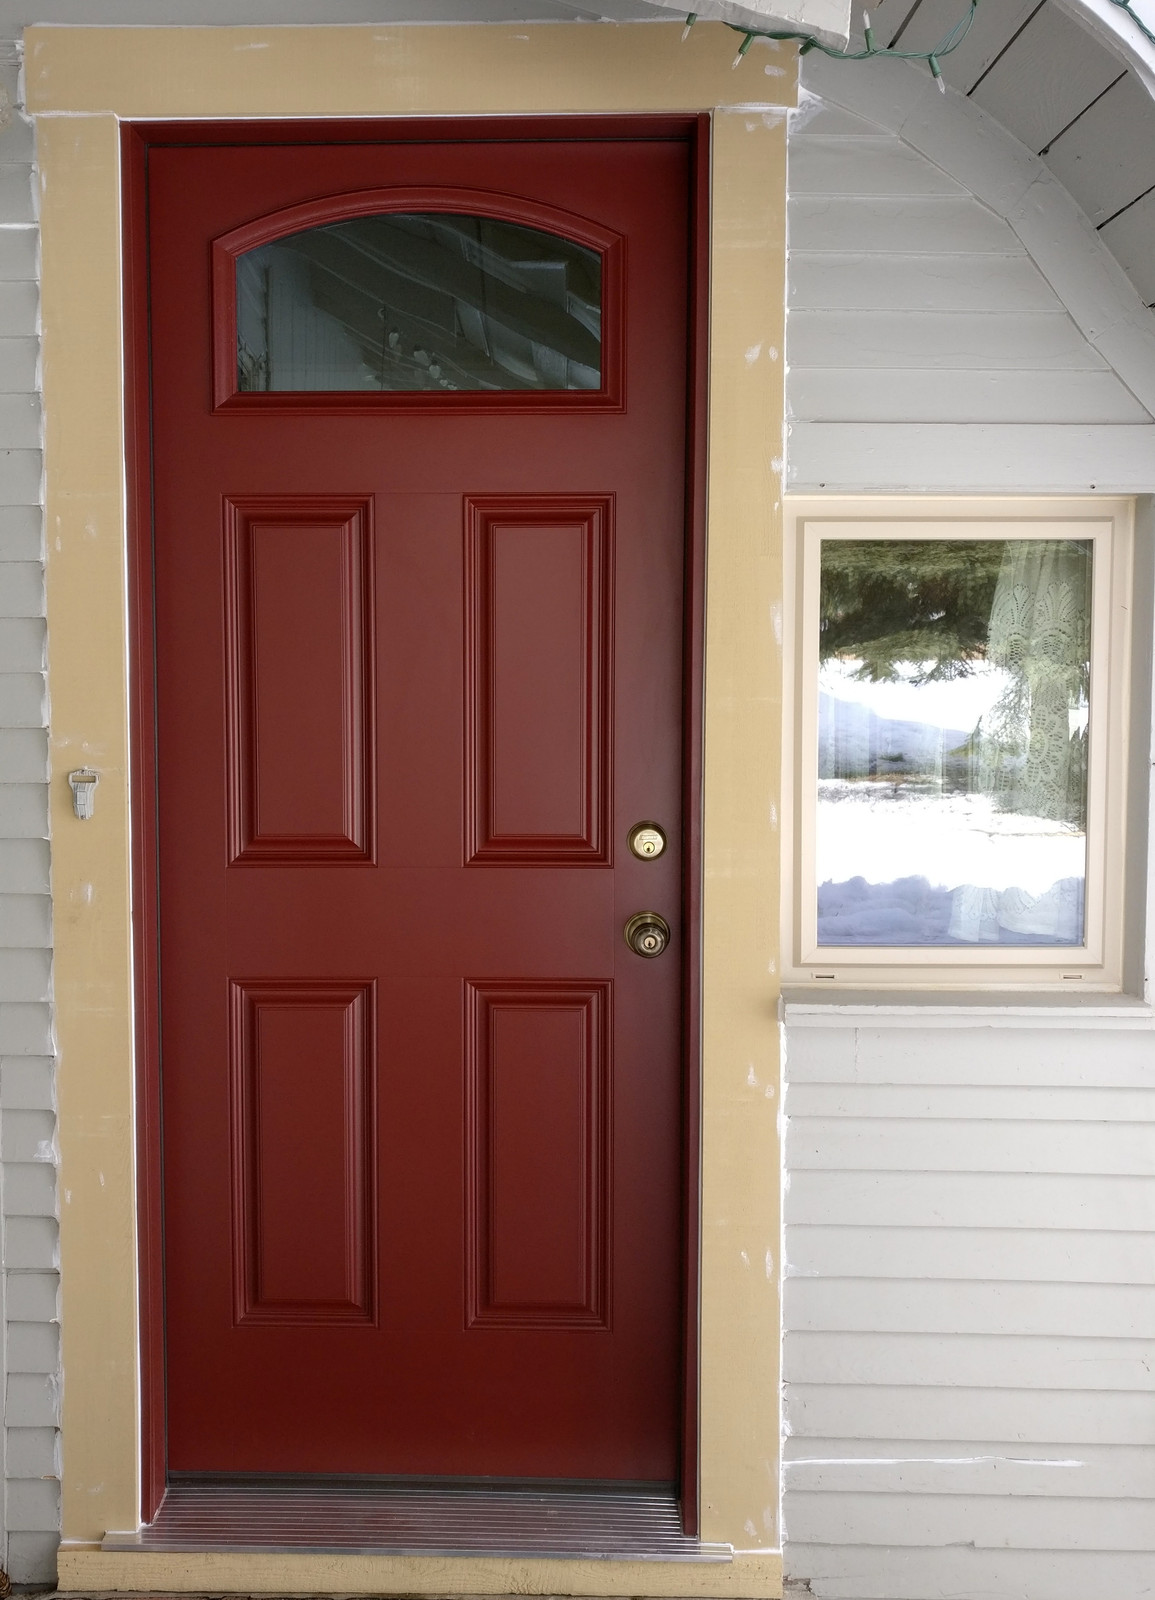 Charmant This Customer Replaced With Entry Door With A New Fiberglass Entry Door  From ProVia.